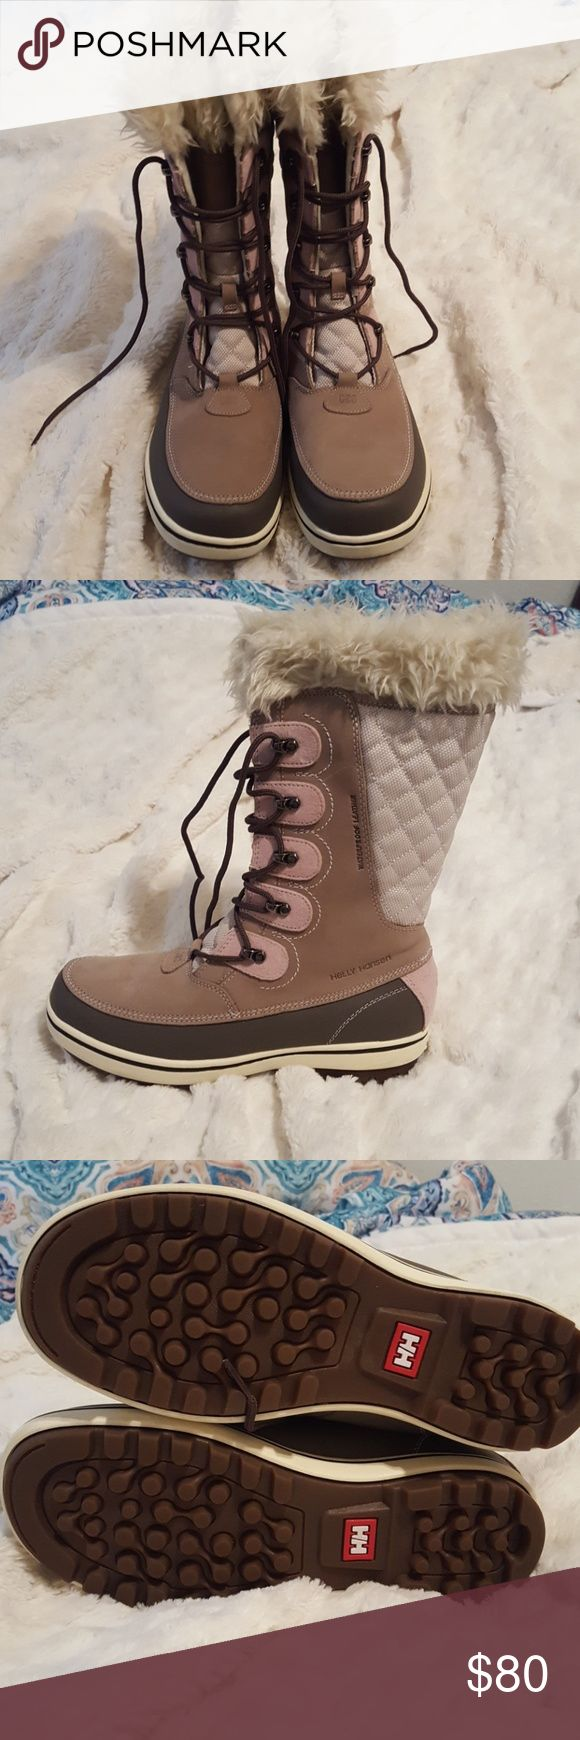 Helly Hansen snow boots Helly Hansen snow boots; only worn once *PRICE IS FIRM* Helly Hansen Shoes Winter & Rain Boots